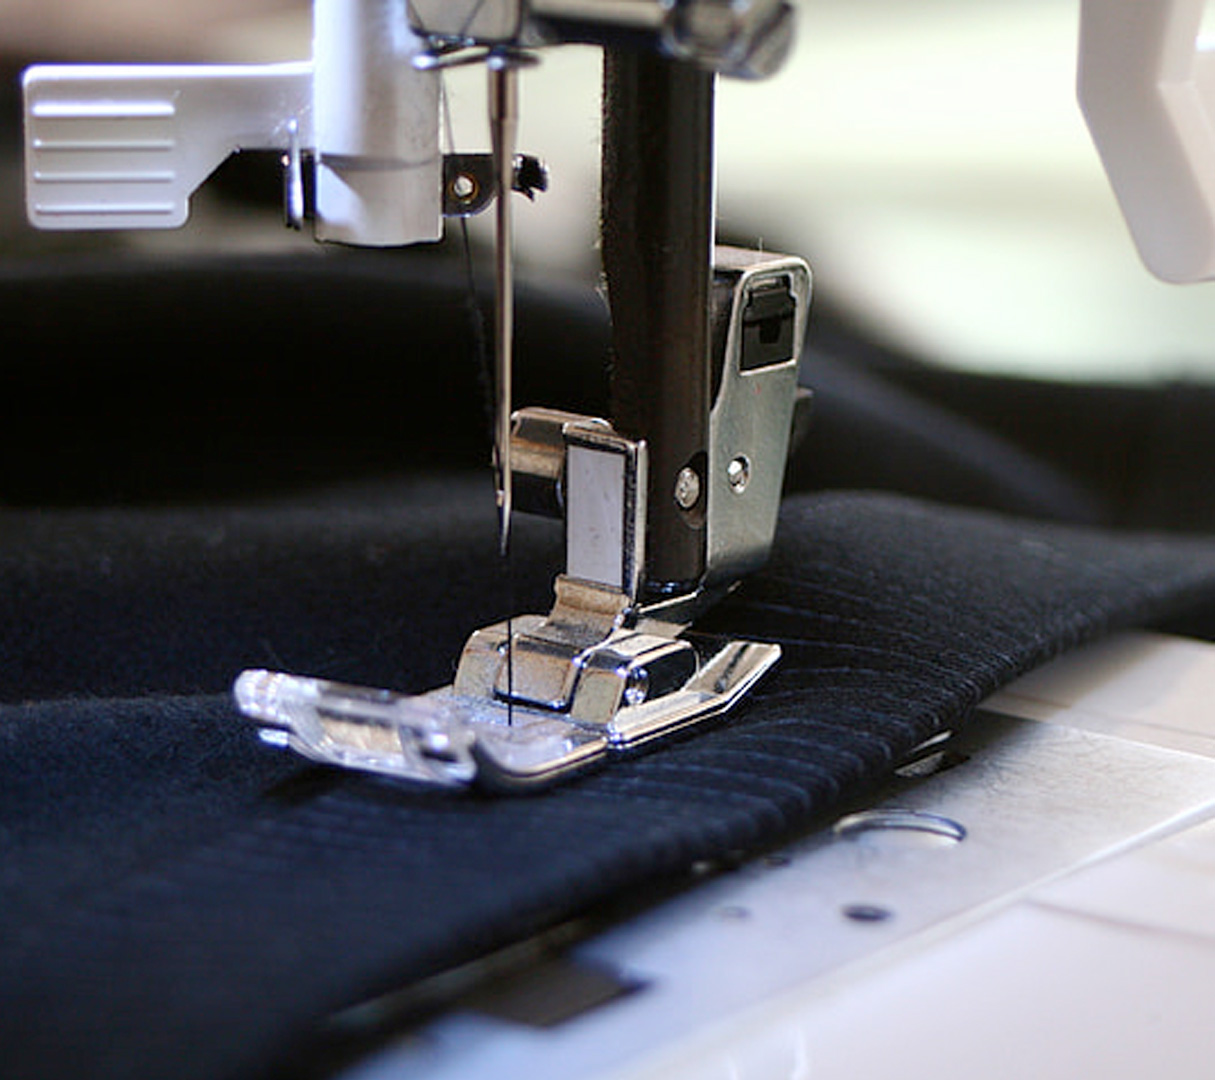 Bespoke - Sewing in Final Construction